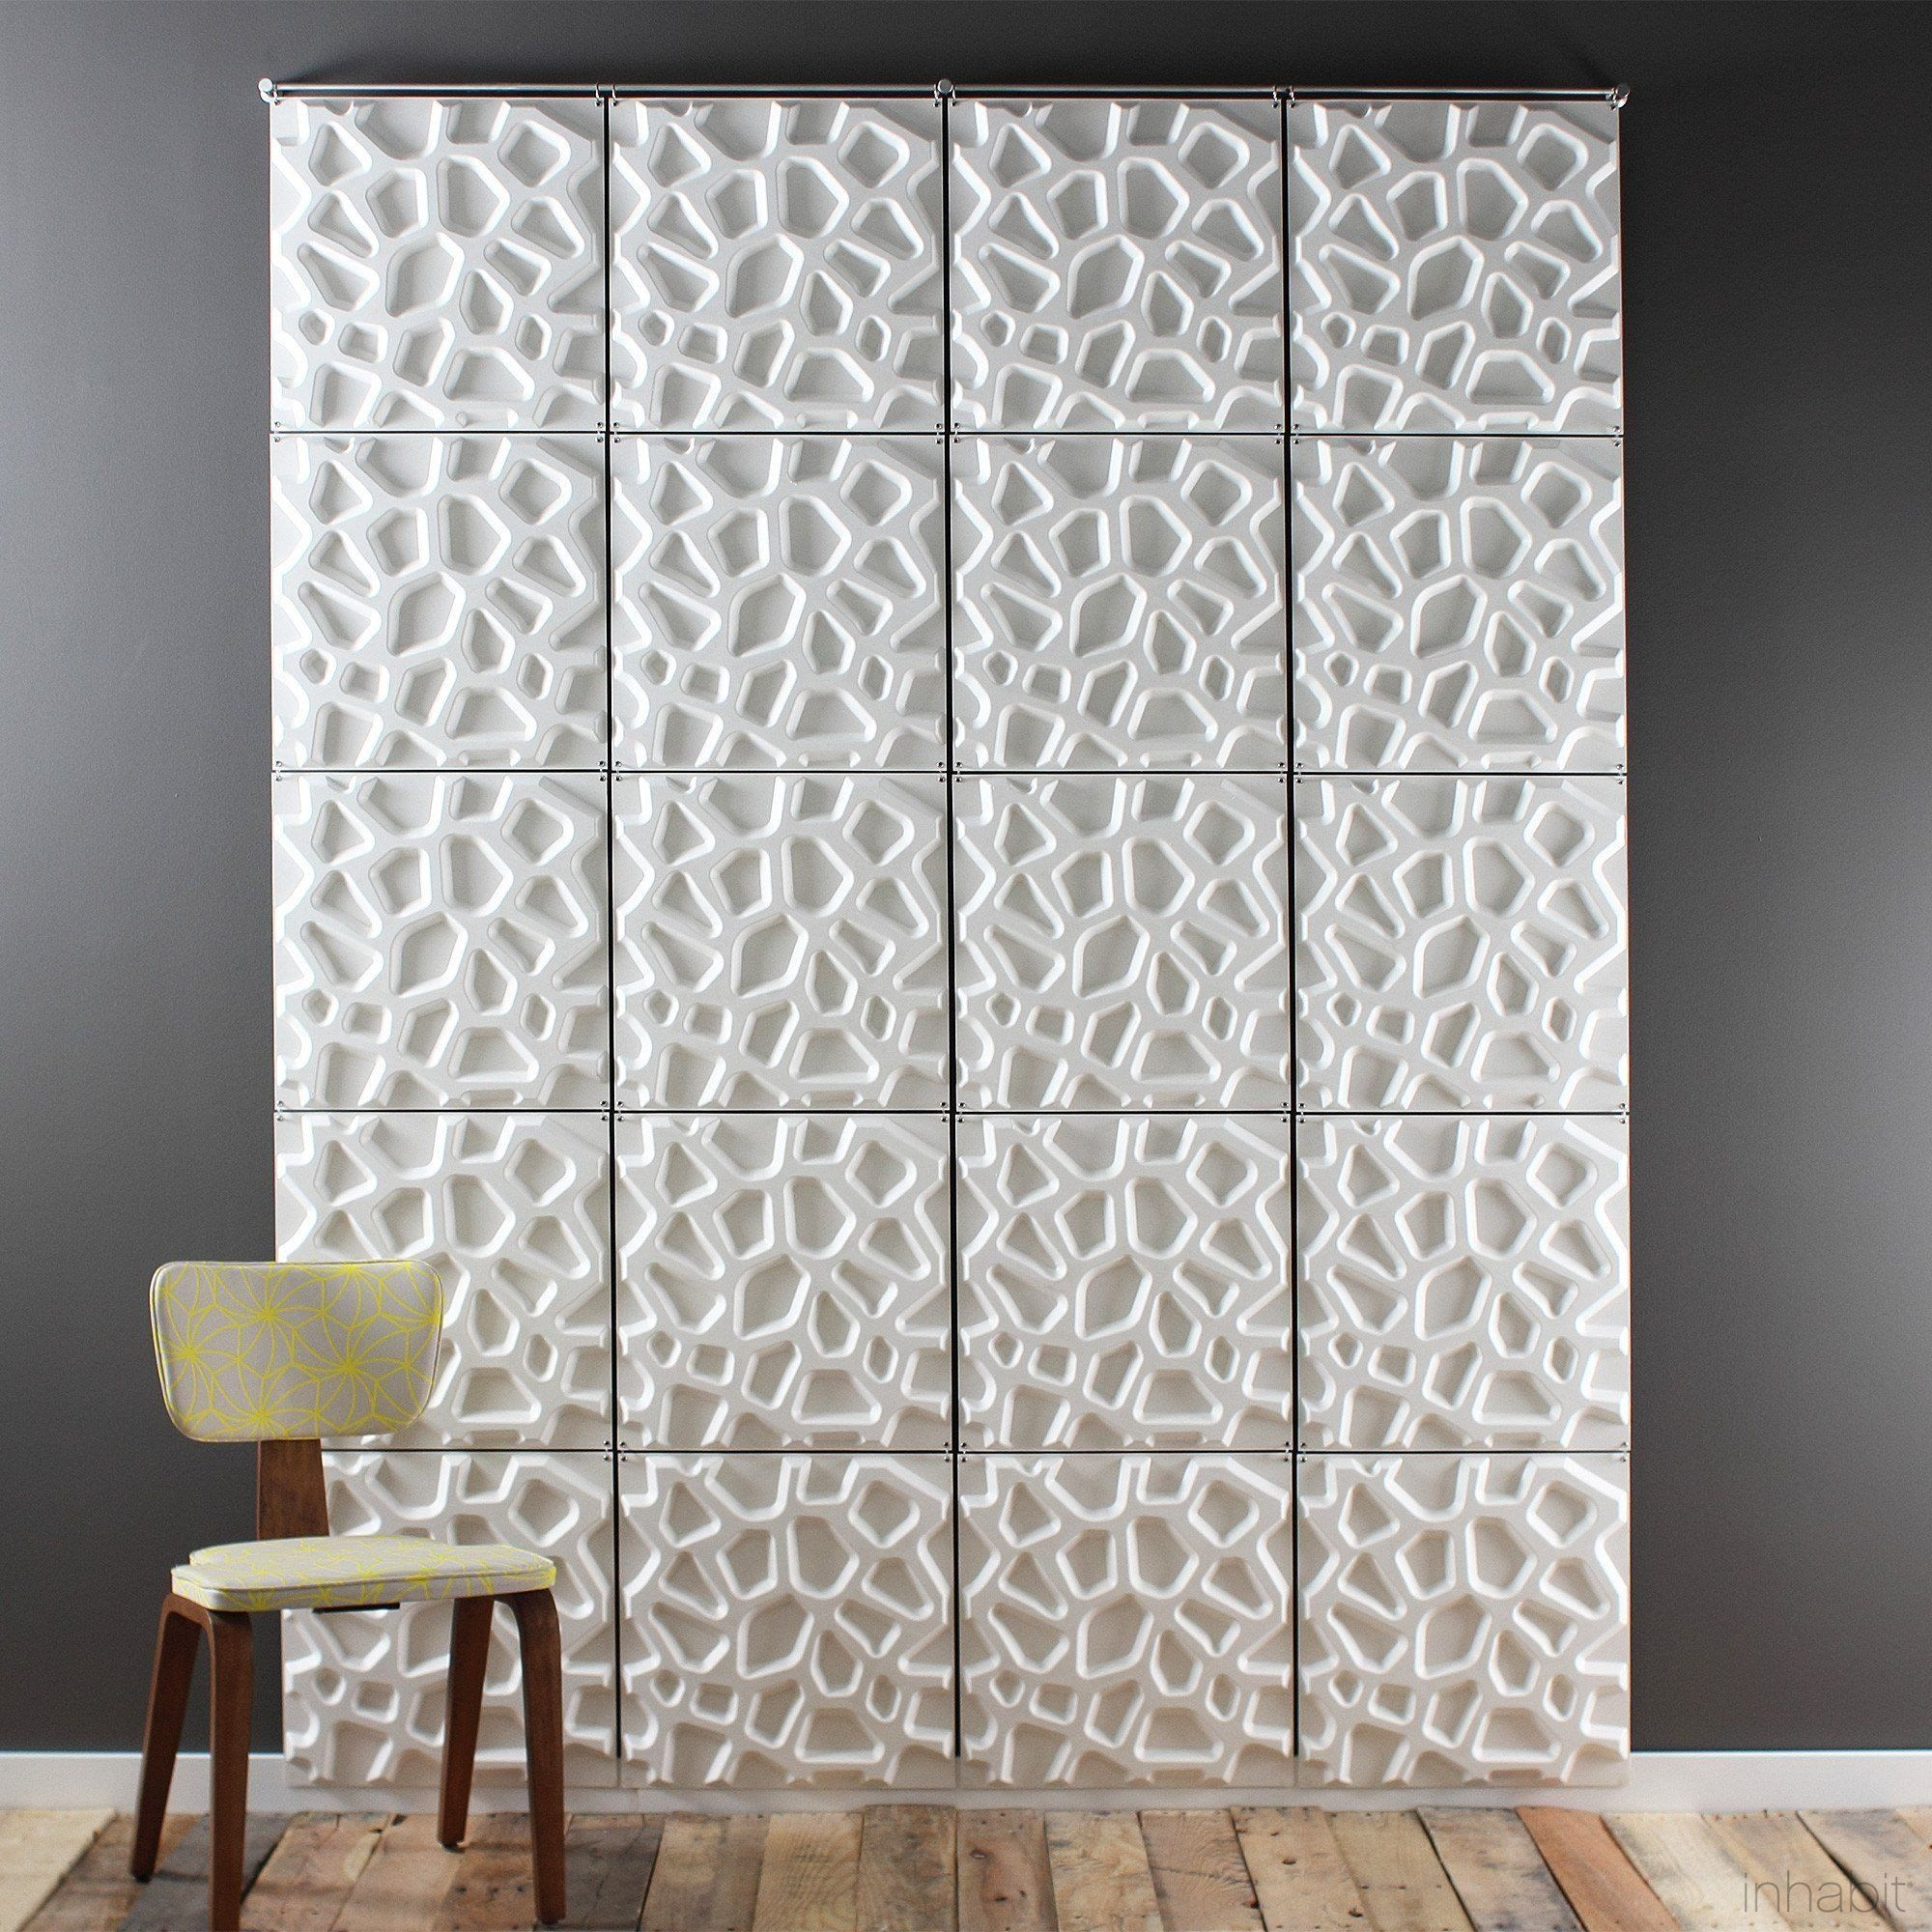 Hive Hanging Wall Flat System 3d Wall Panels 3d Wall Panels Textured Wall Panels Wall Panels